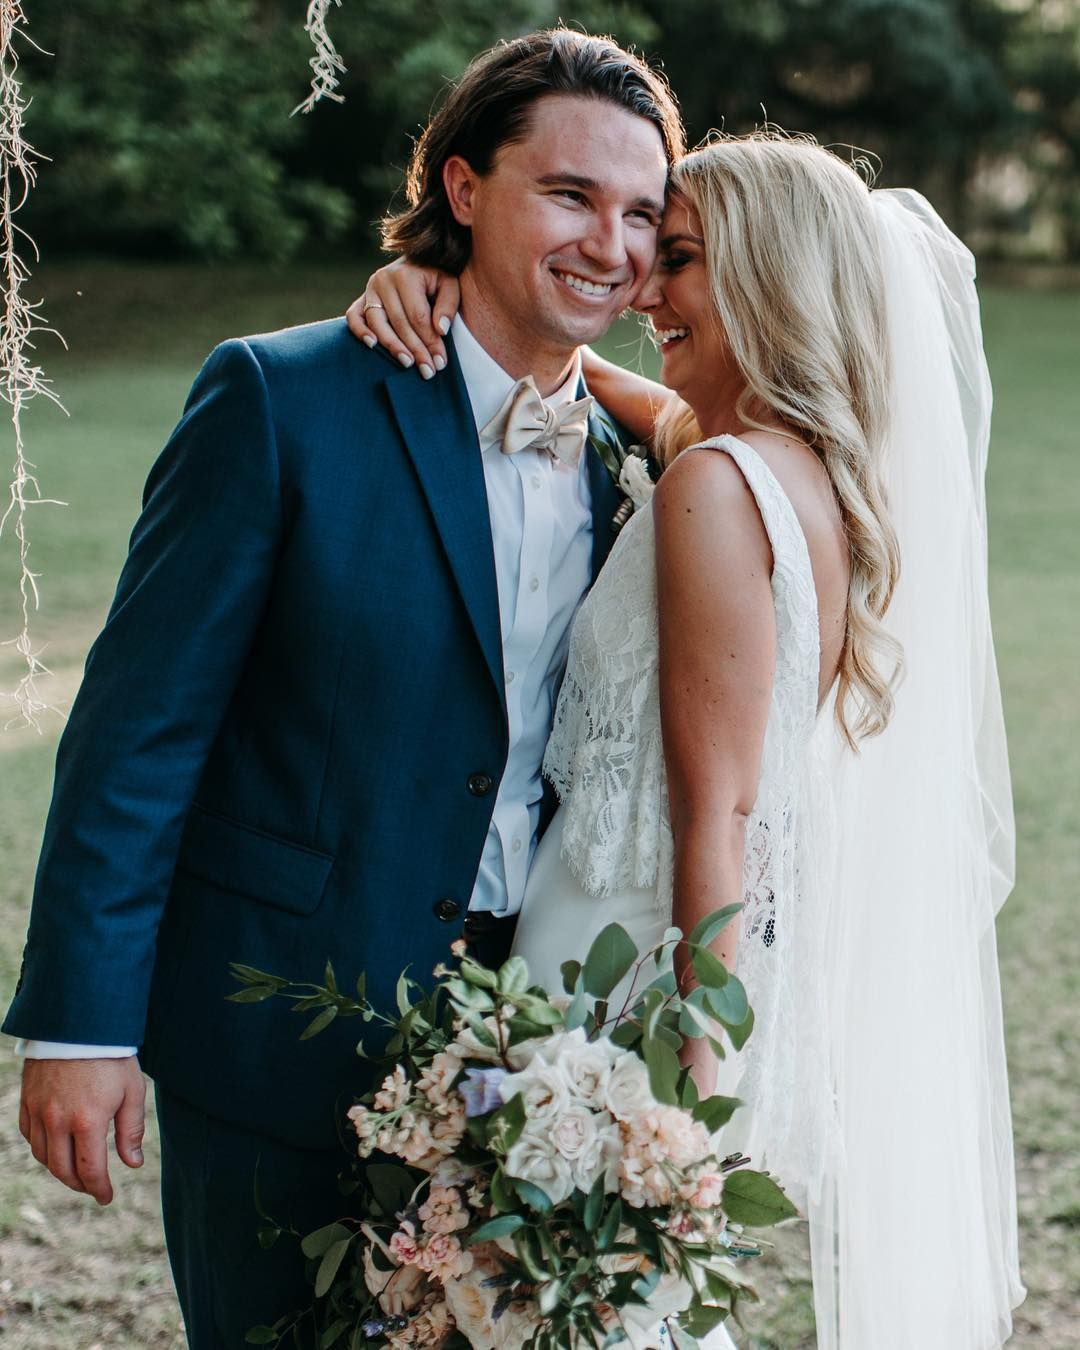 All Smiles From This Happy Couple! If You Missed This Week